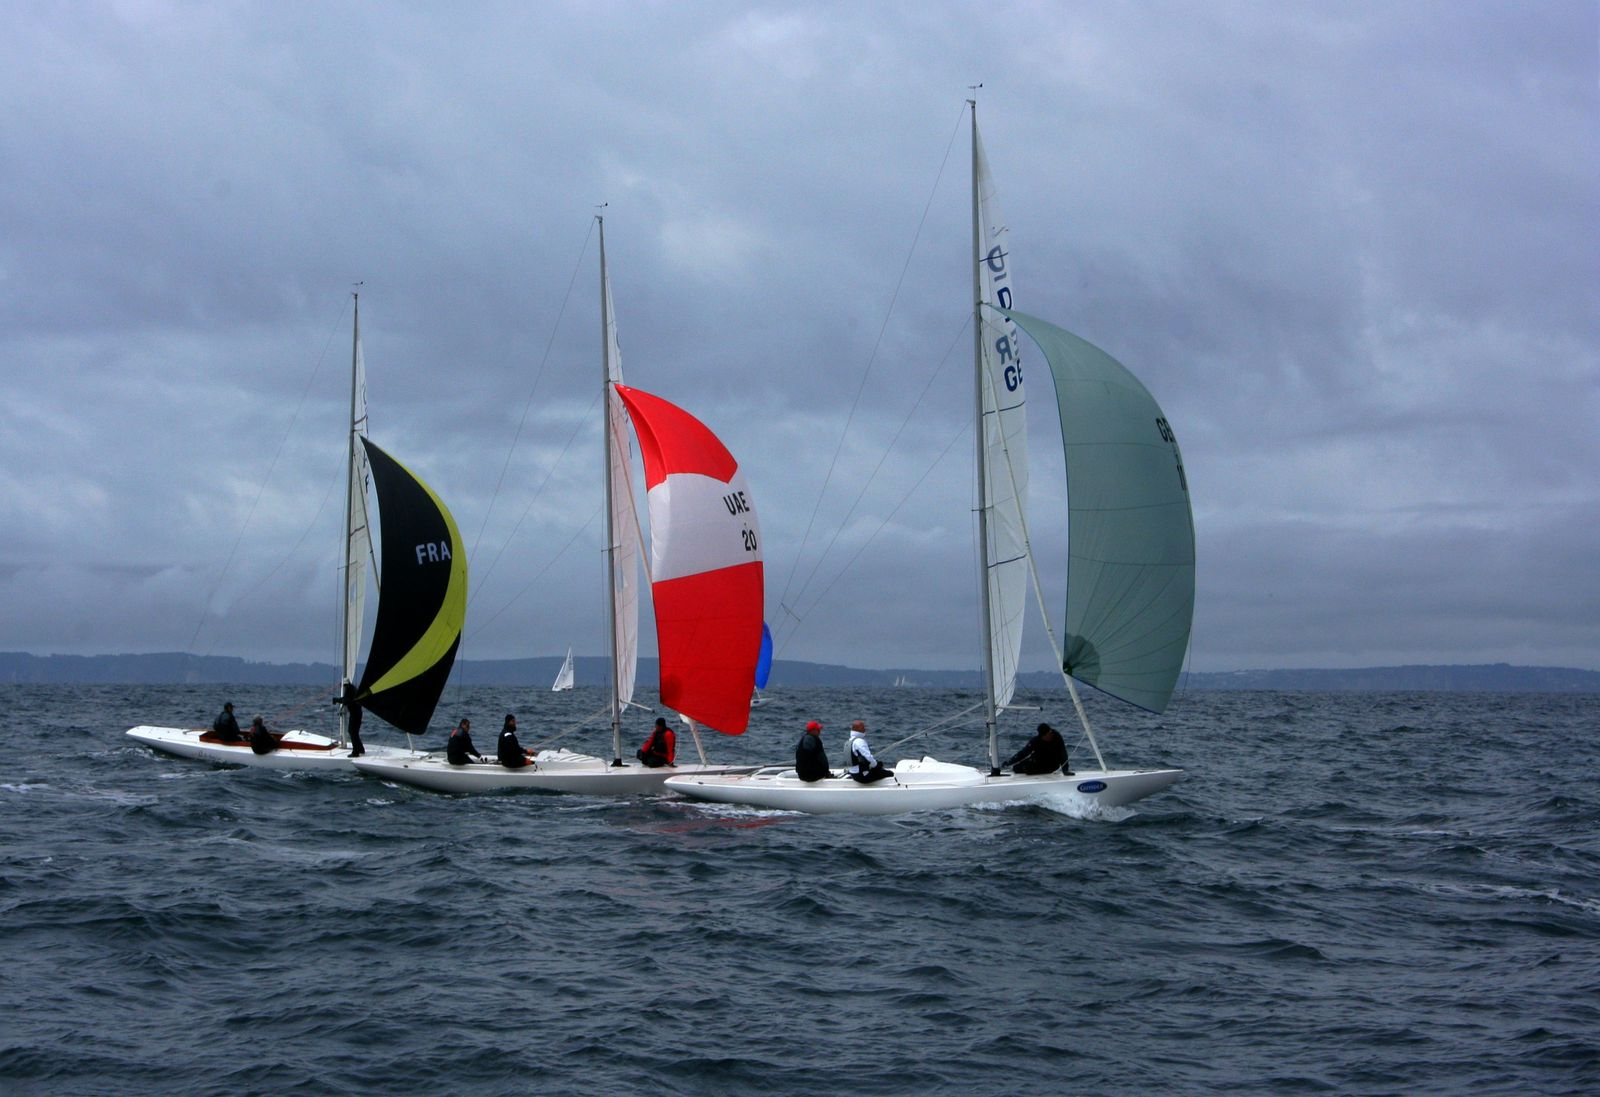 219  -  Grand Prix Dragon mai 2013 baie de Douarnenez, photos © GeoMar, Grand Prix Guyader